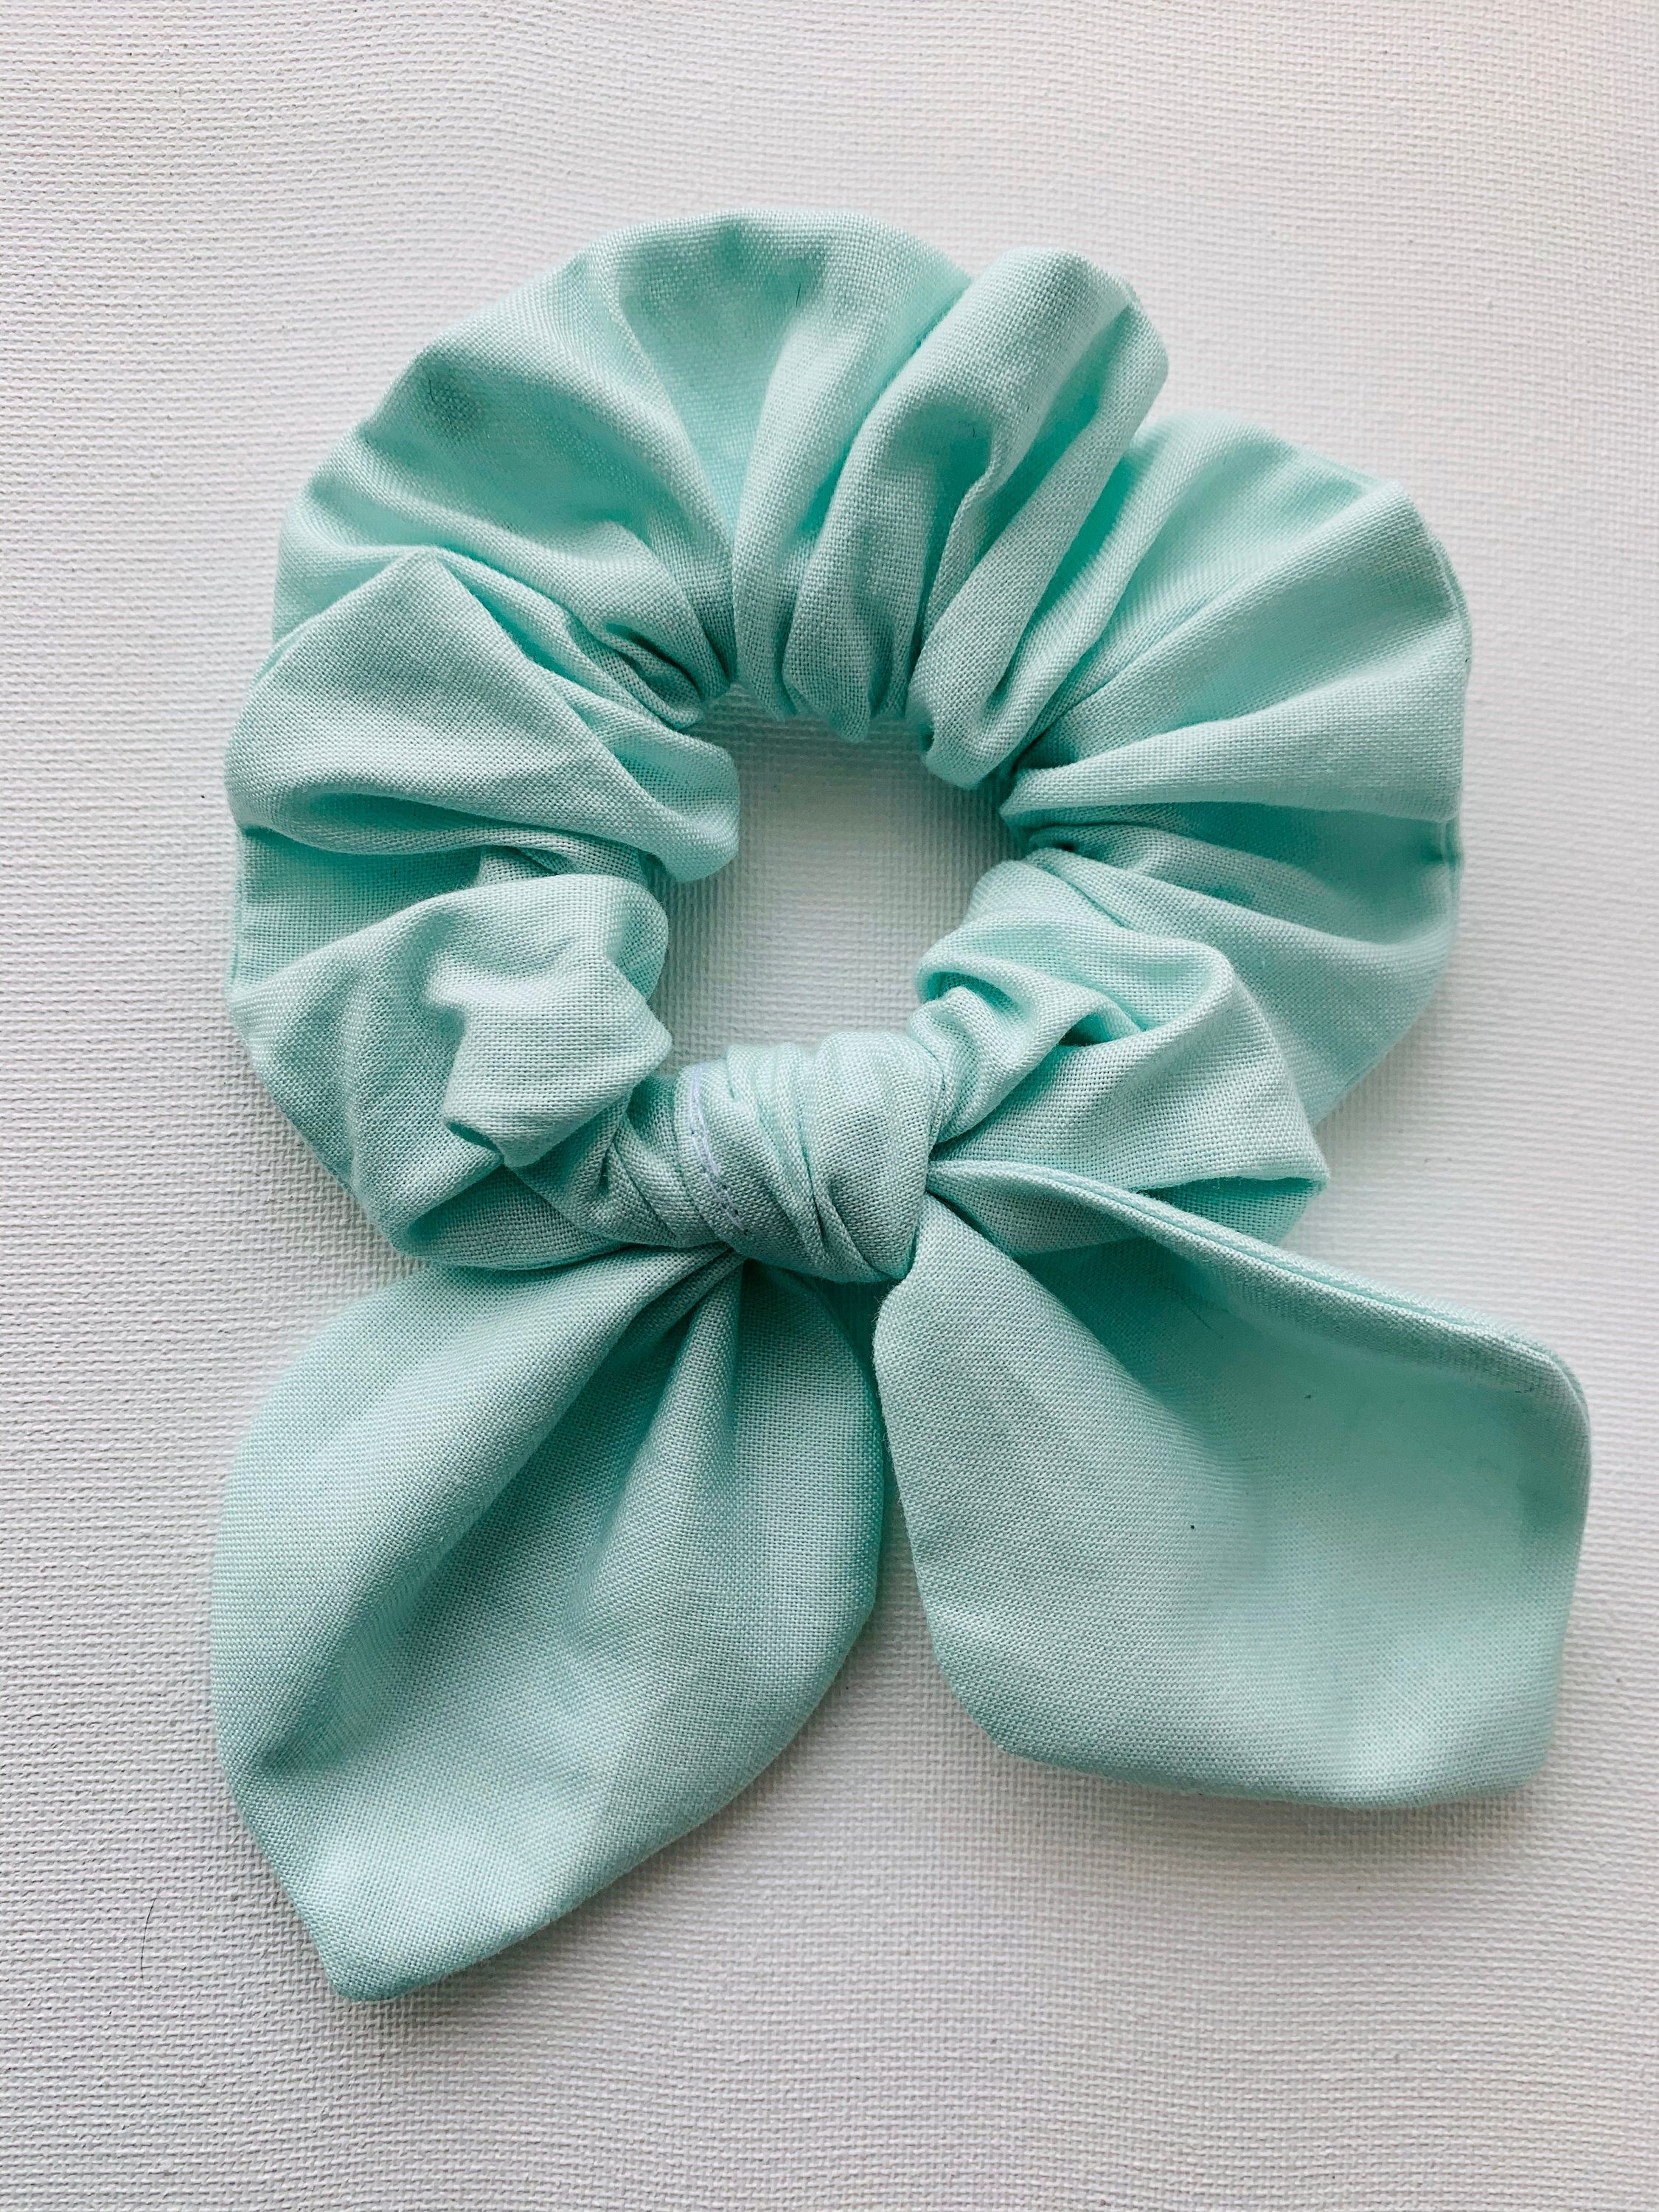 Sky Blue Hair Scrunchie, Scrunchy, Top Knot, Hair Tie, Hair Elastic, Hair Accessories, Gift, Present, Handsewn #hairscrunchie